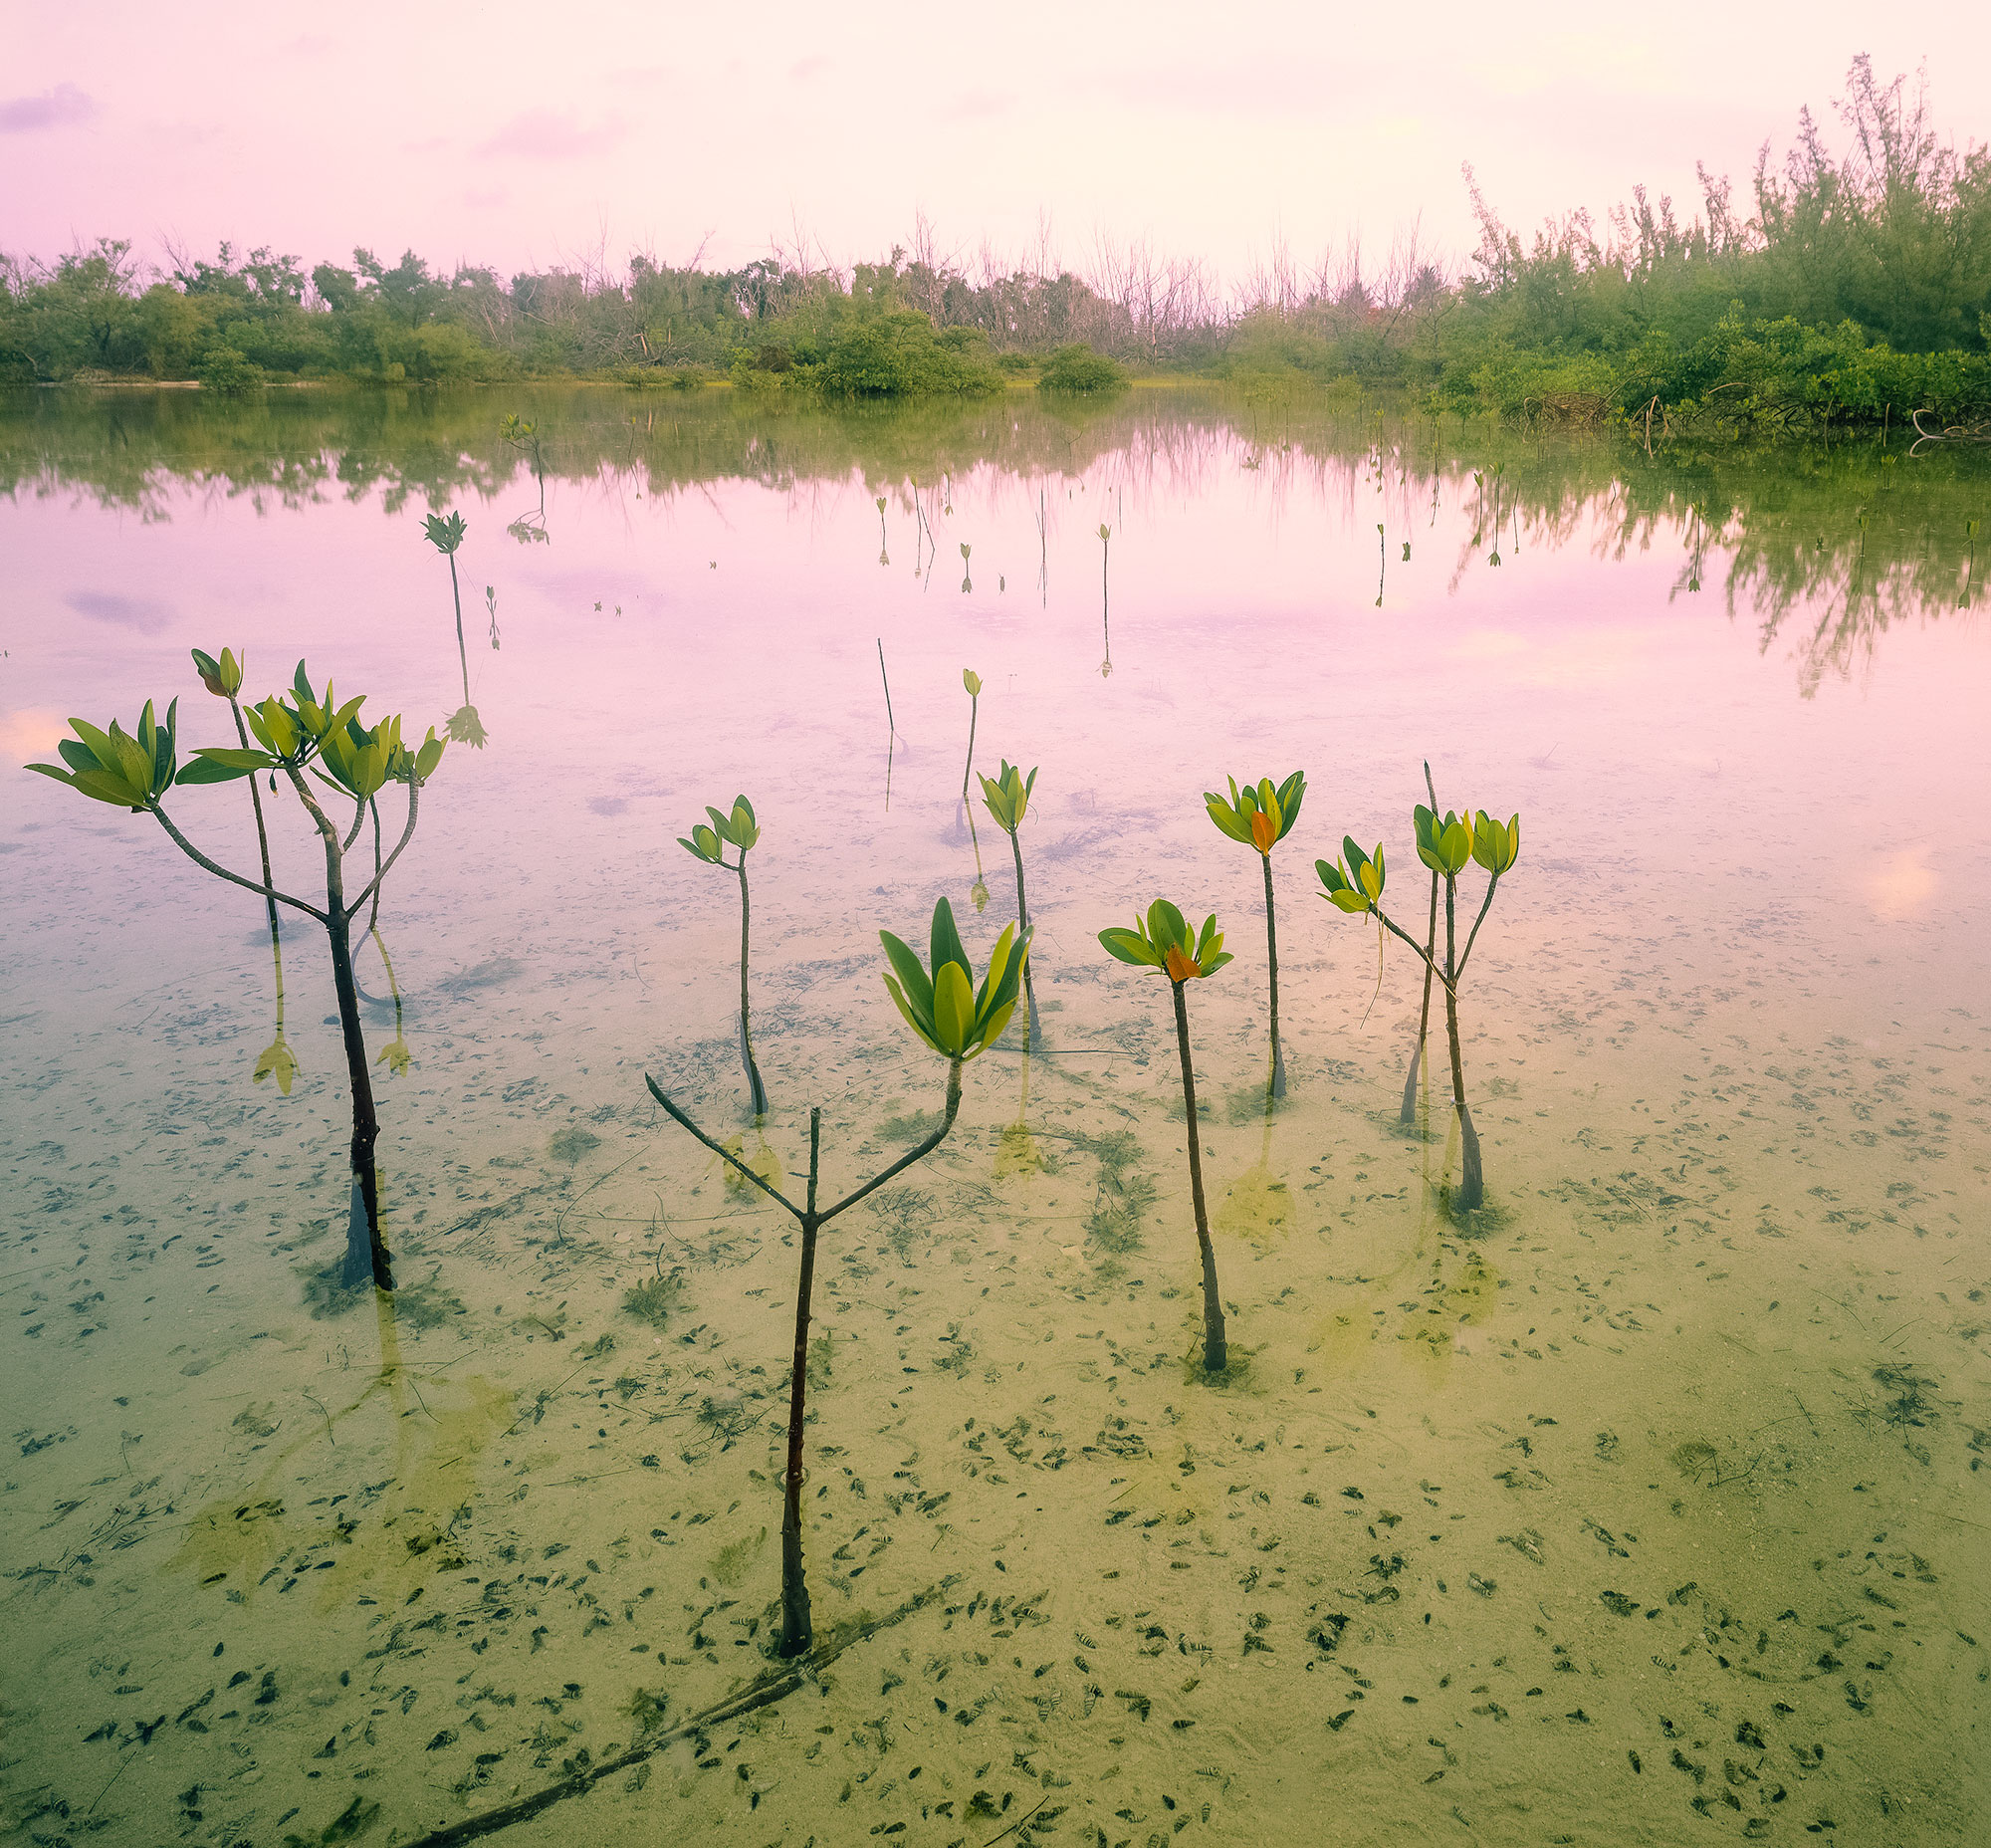 Mangroves in the Abacos are under threat by developments like Bakers Bay and Treasure Sands.